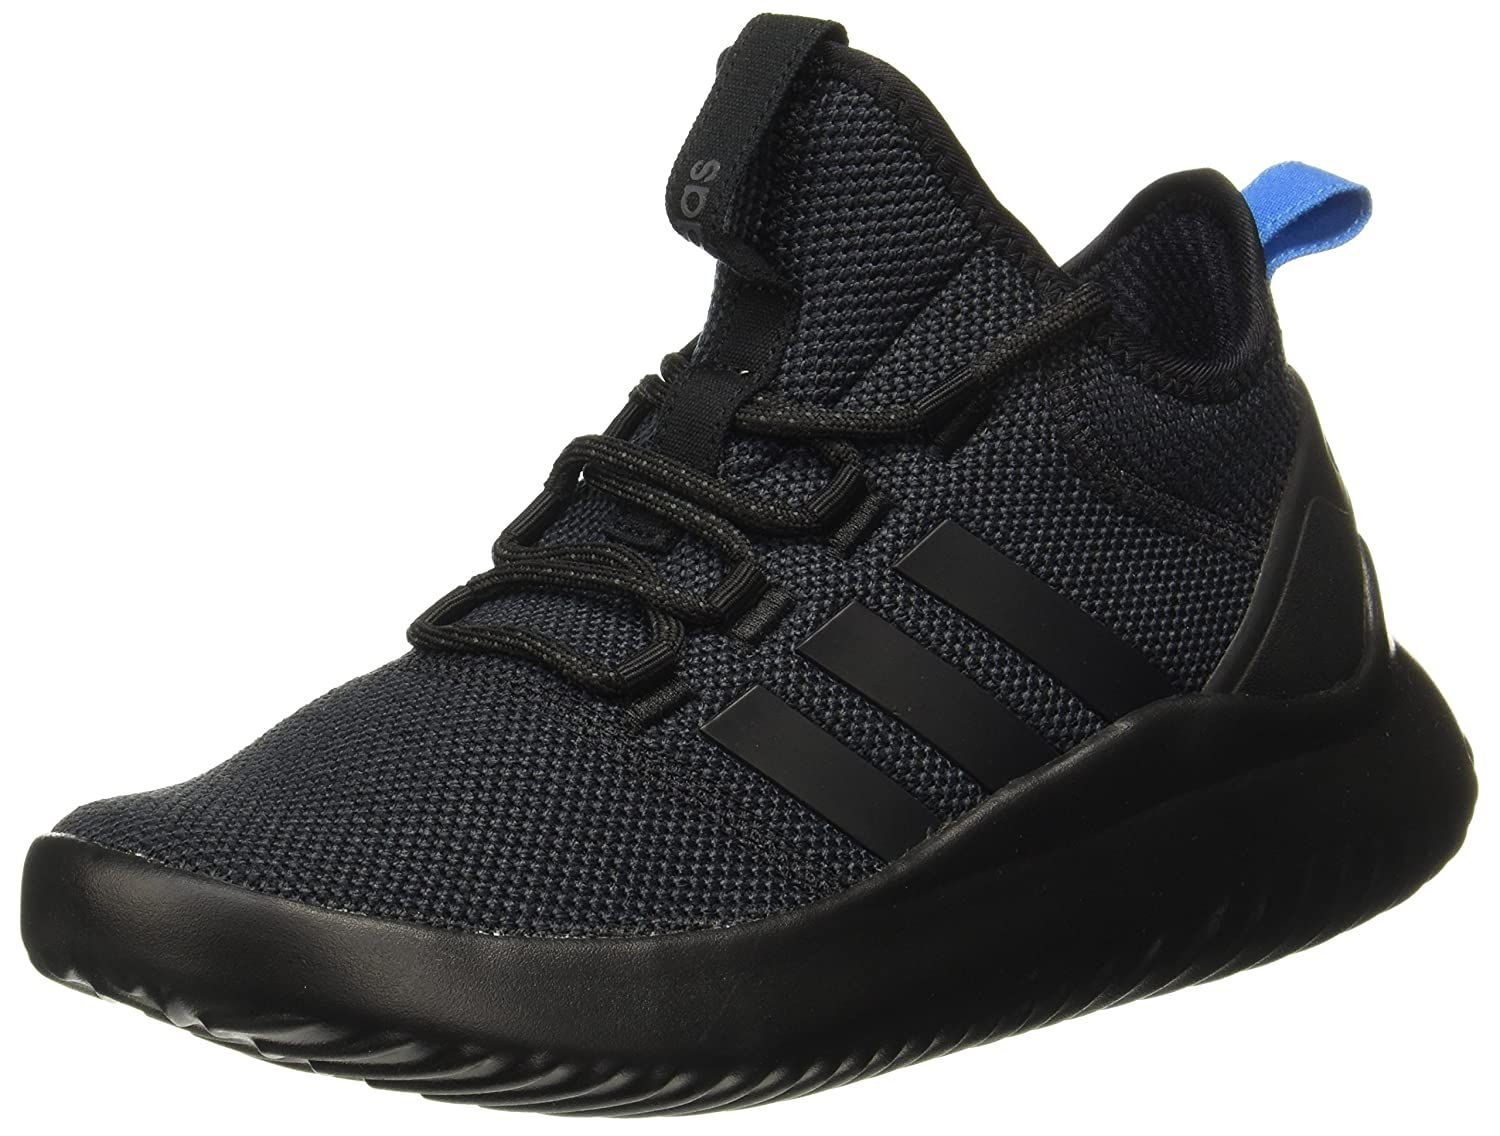 f4424566b8df Adidas Men s Ultimate Bball Carbon